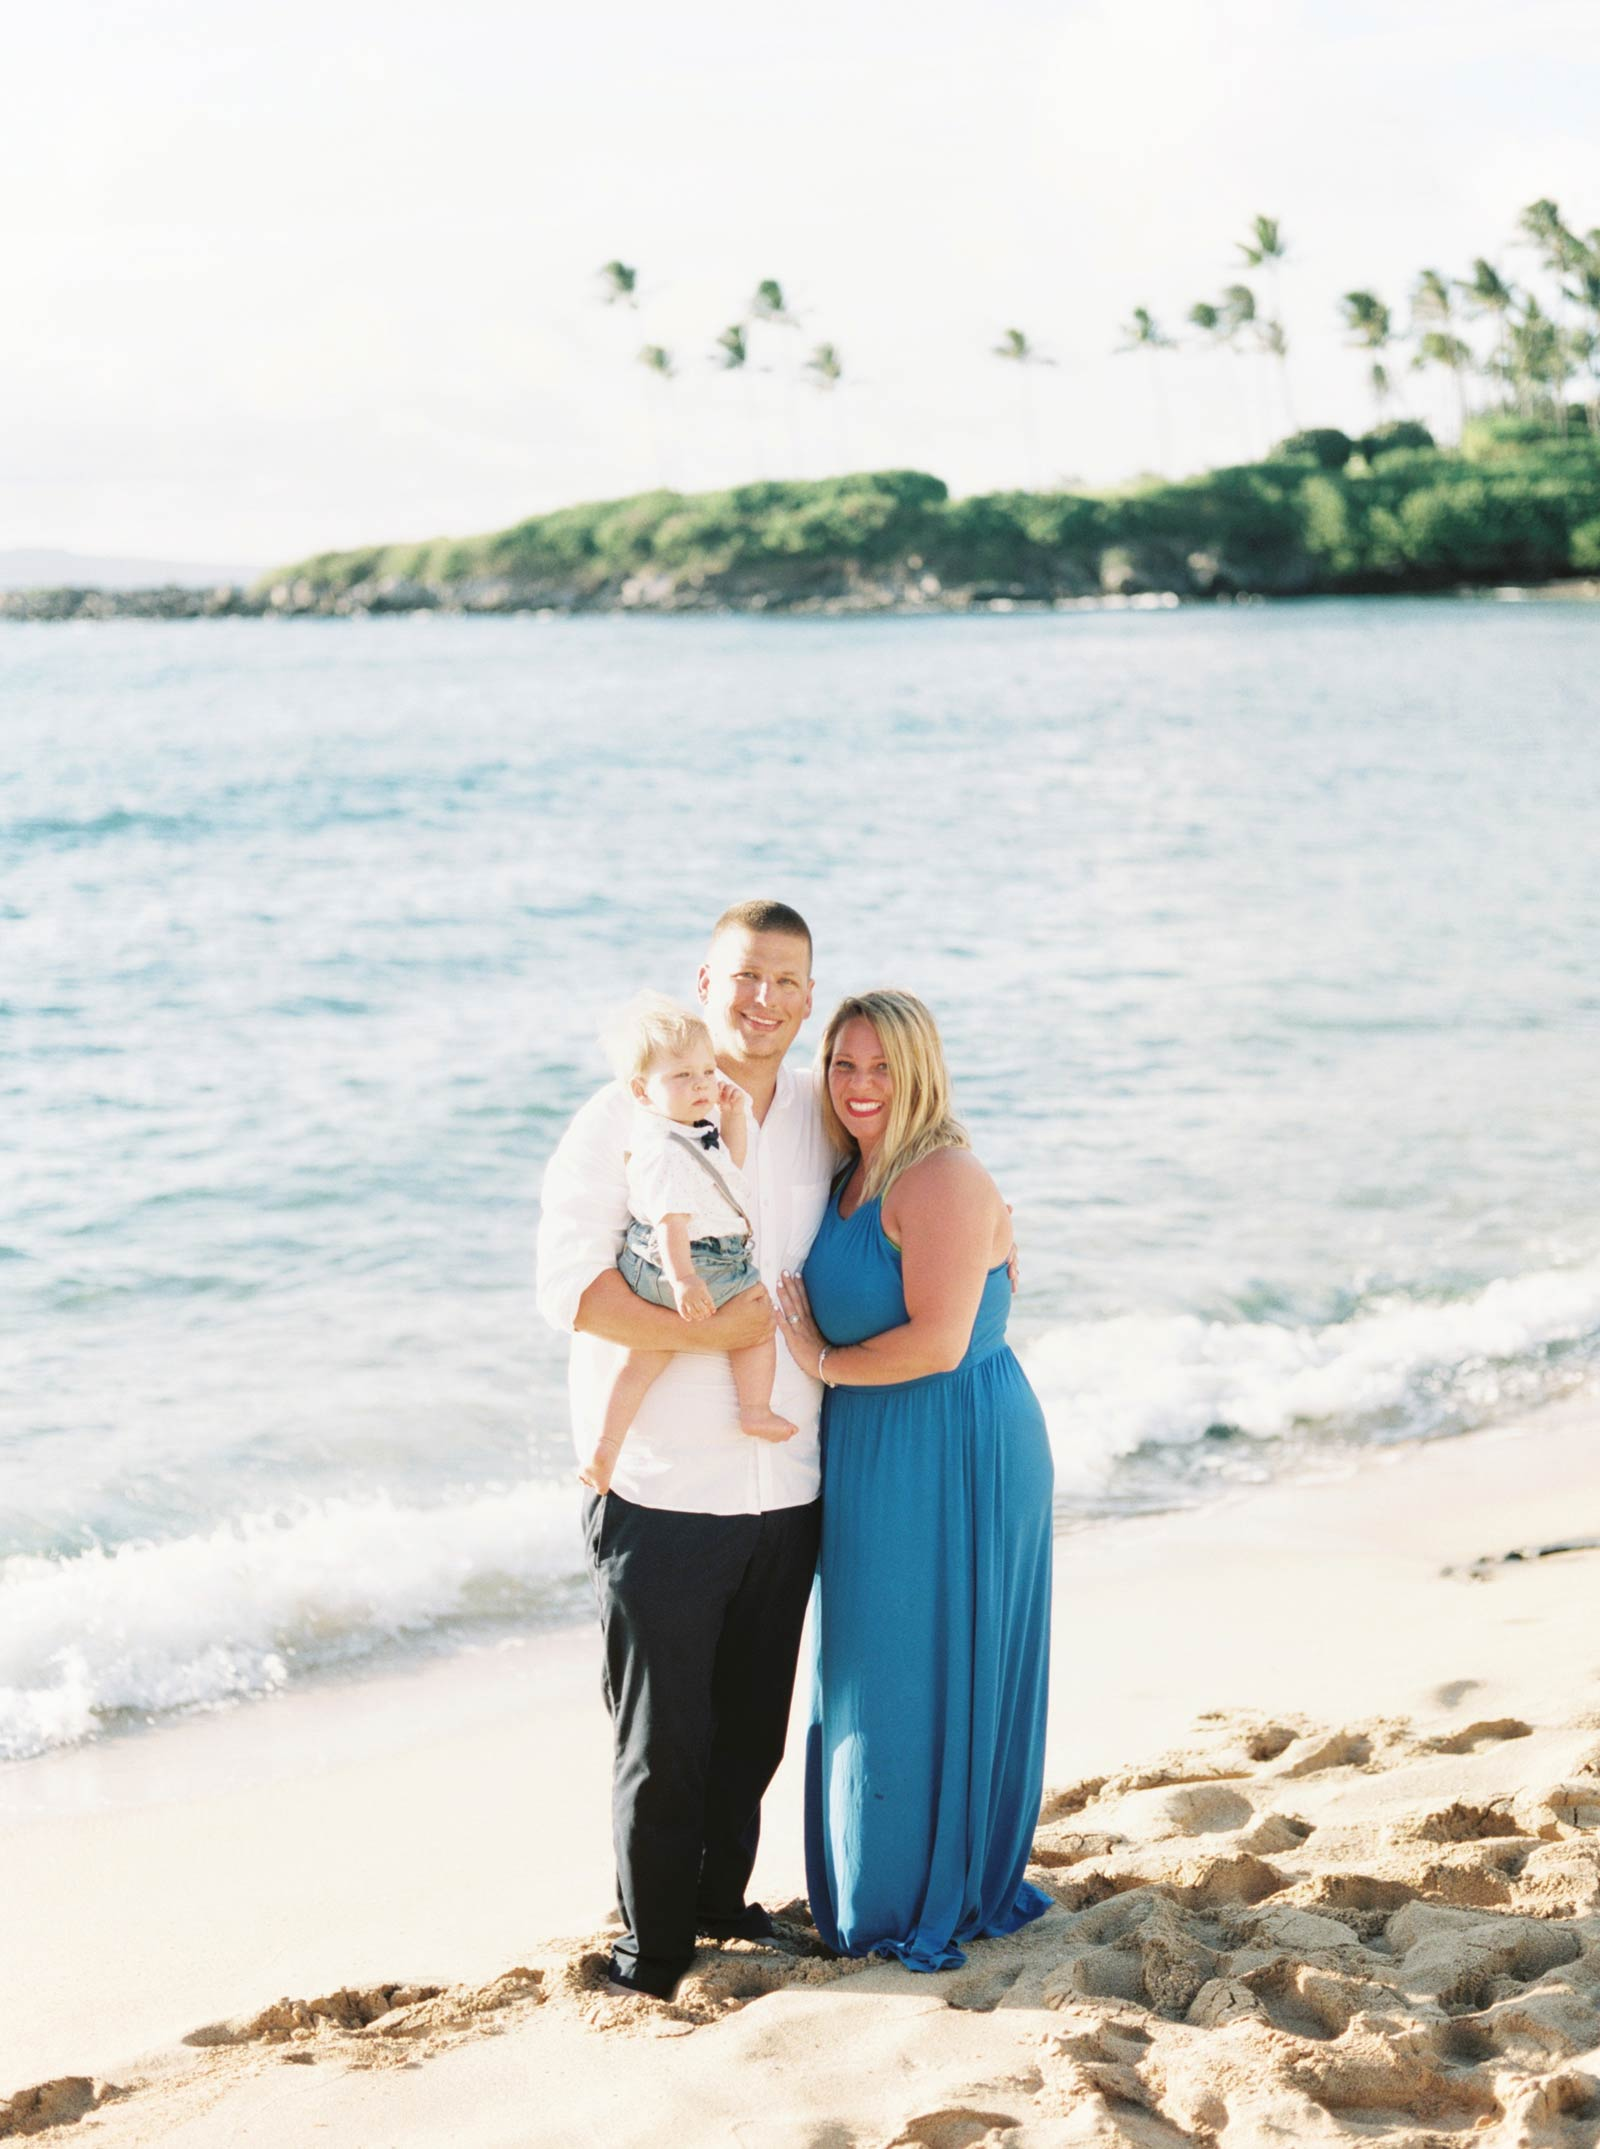 Maui-vow-renewal-family-photos-023.jpg